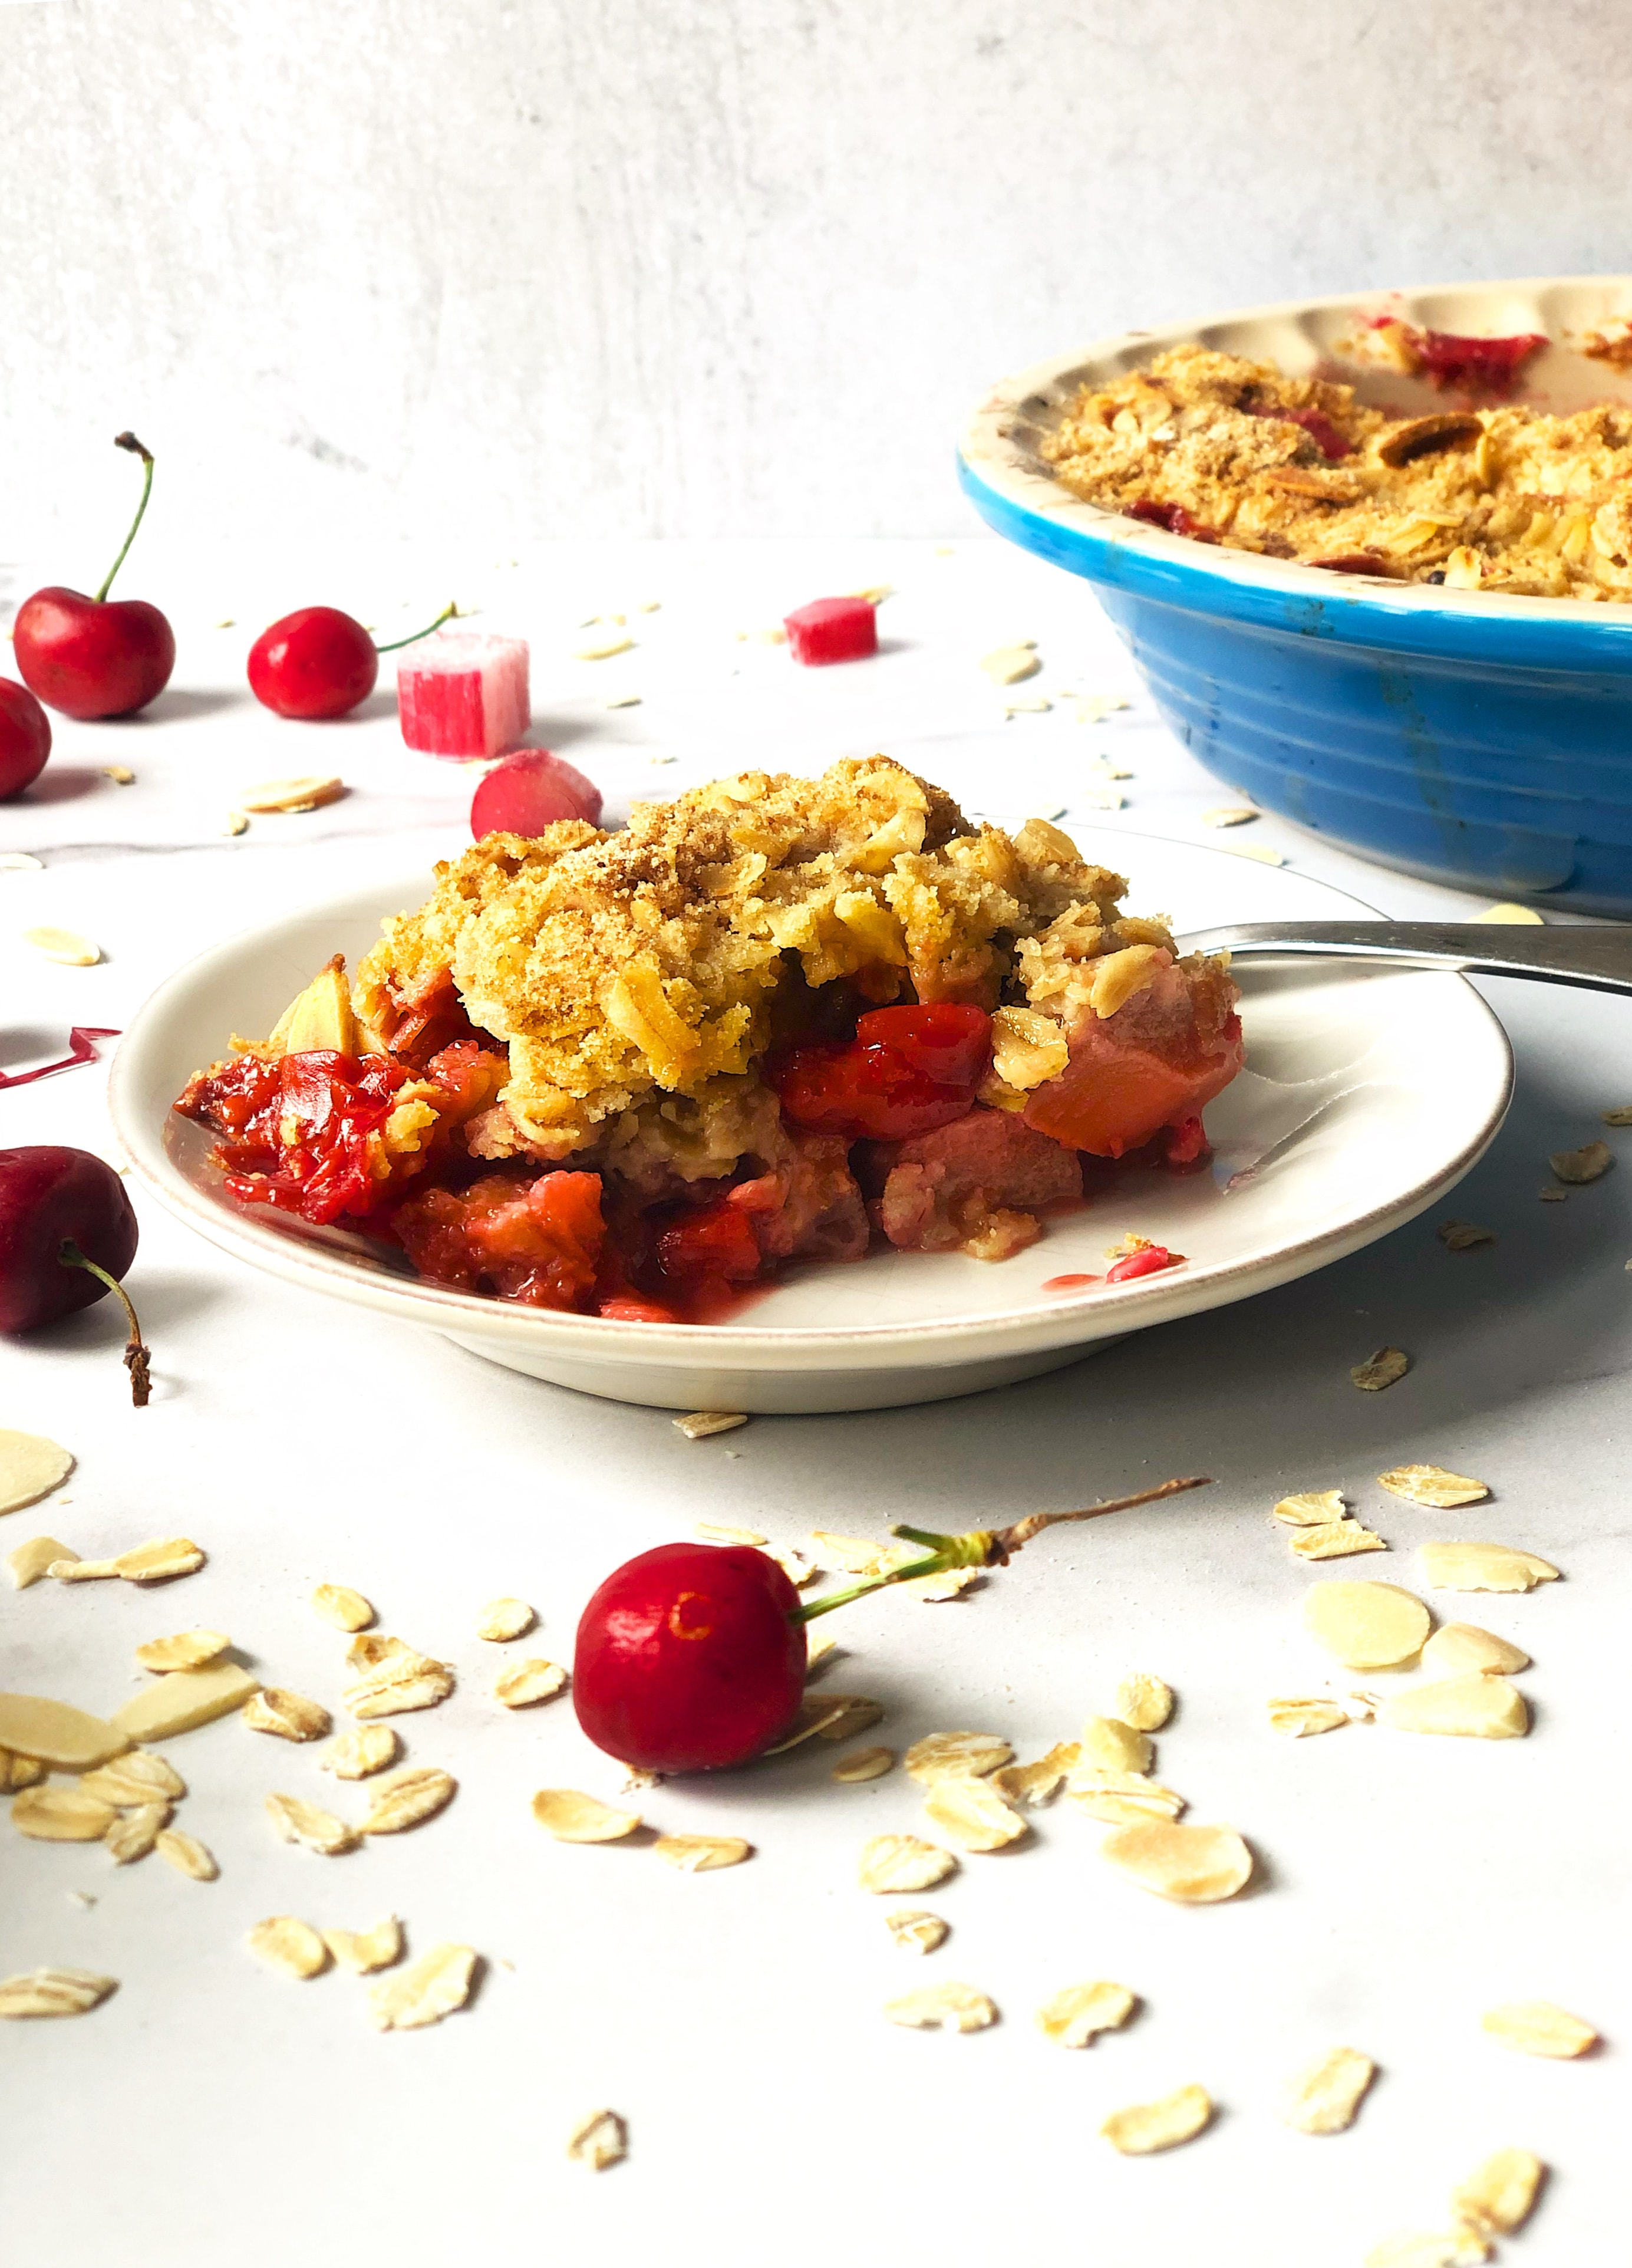 Slice of Summer Fruit Crisp - Strawberries, Rhubarb, Cherries in a buttery crisp with oats and almonds